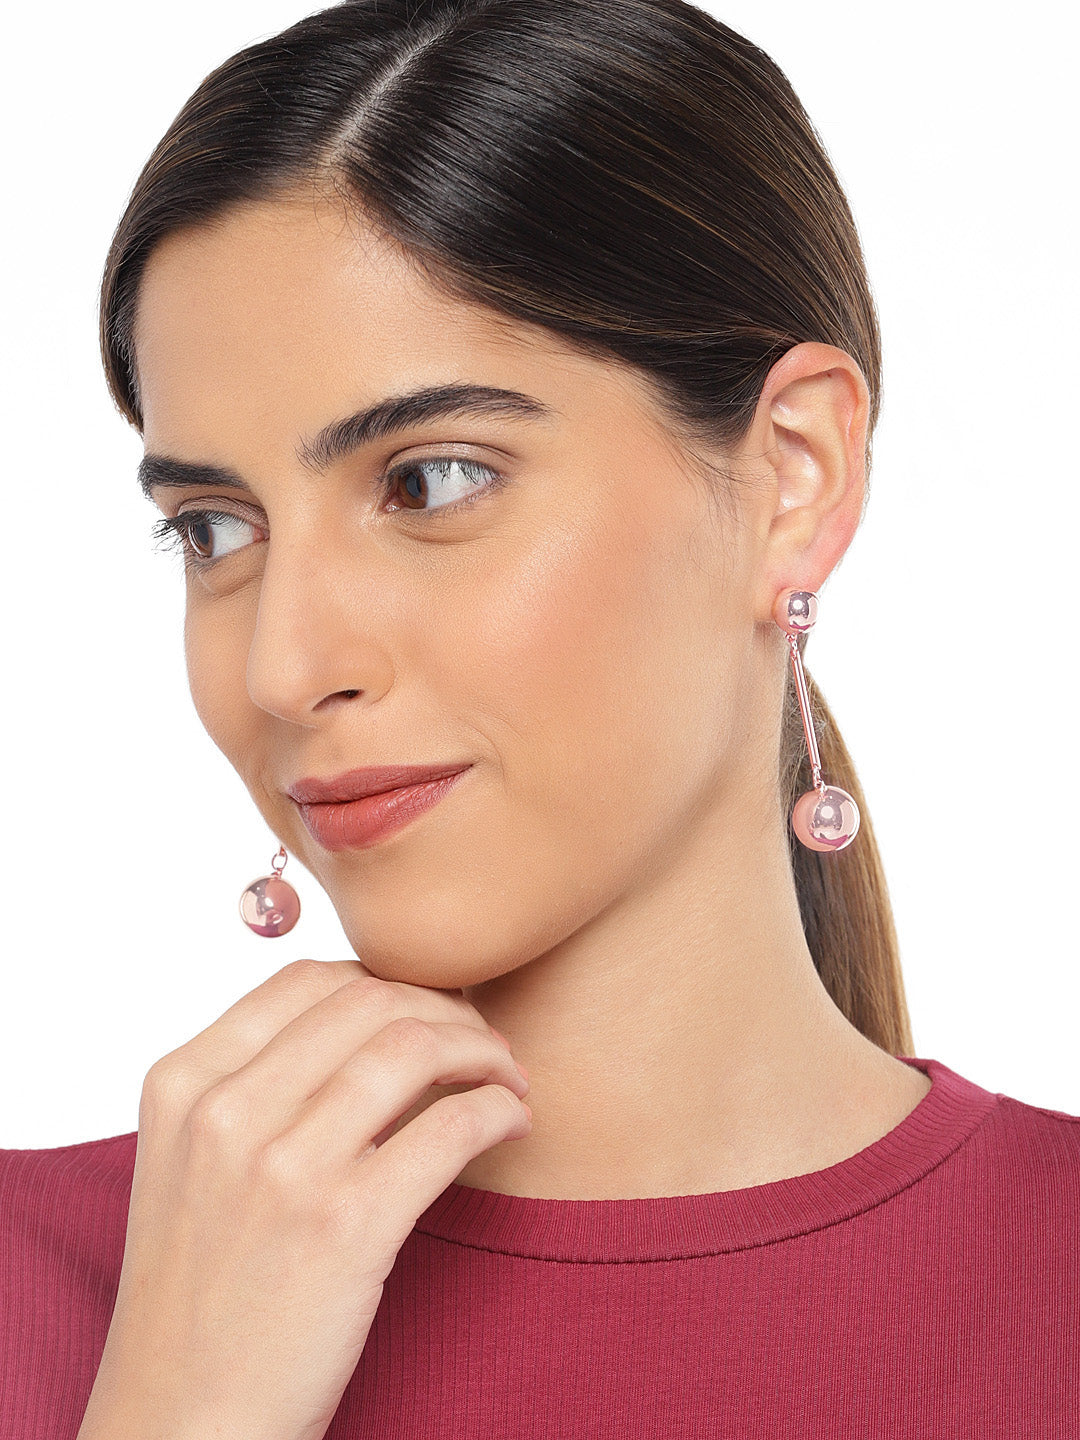 Rose Gold Linear Earrings with Metal Balls - ChicMela